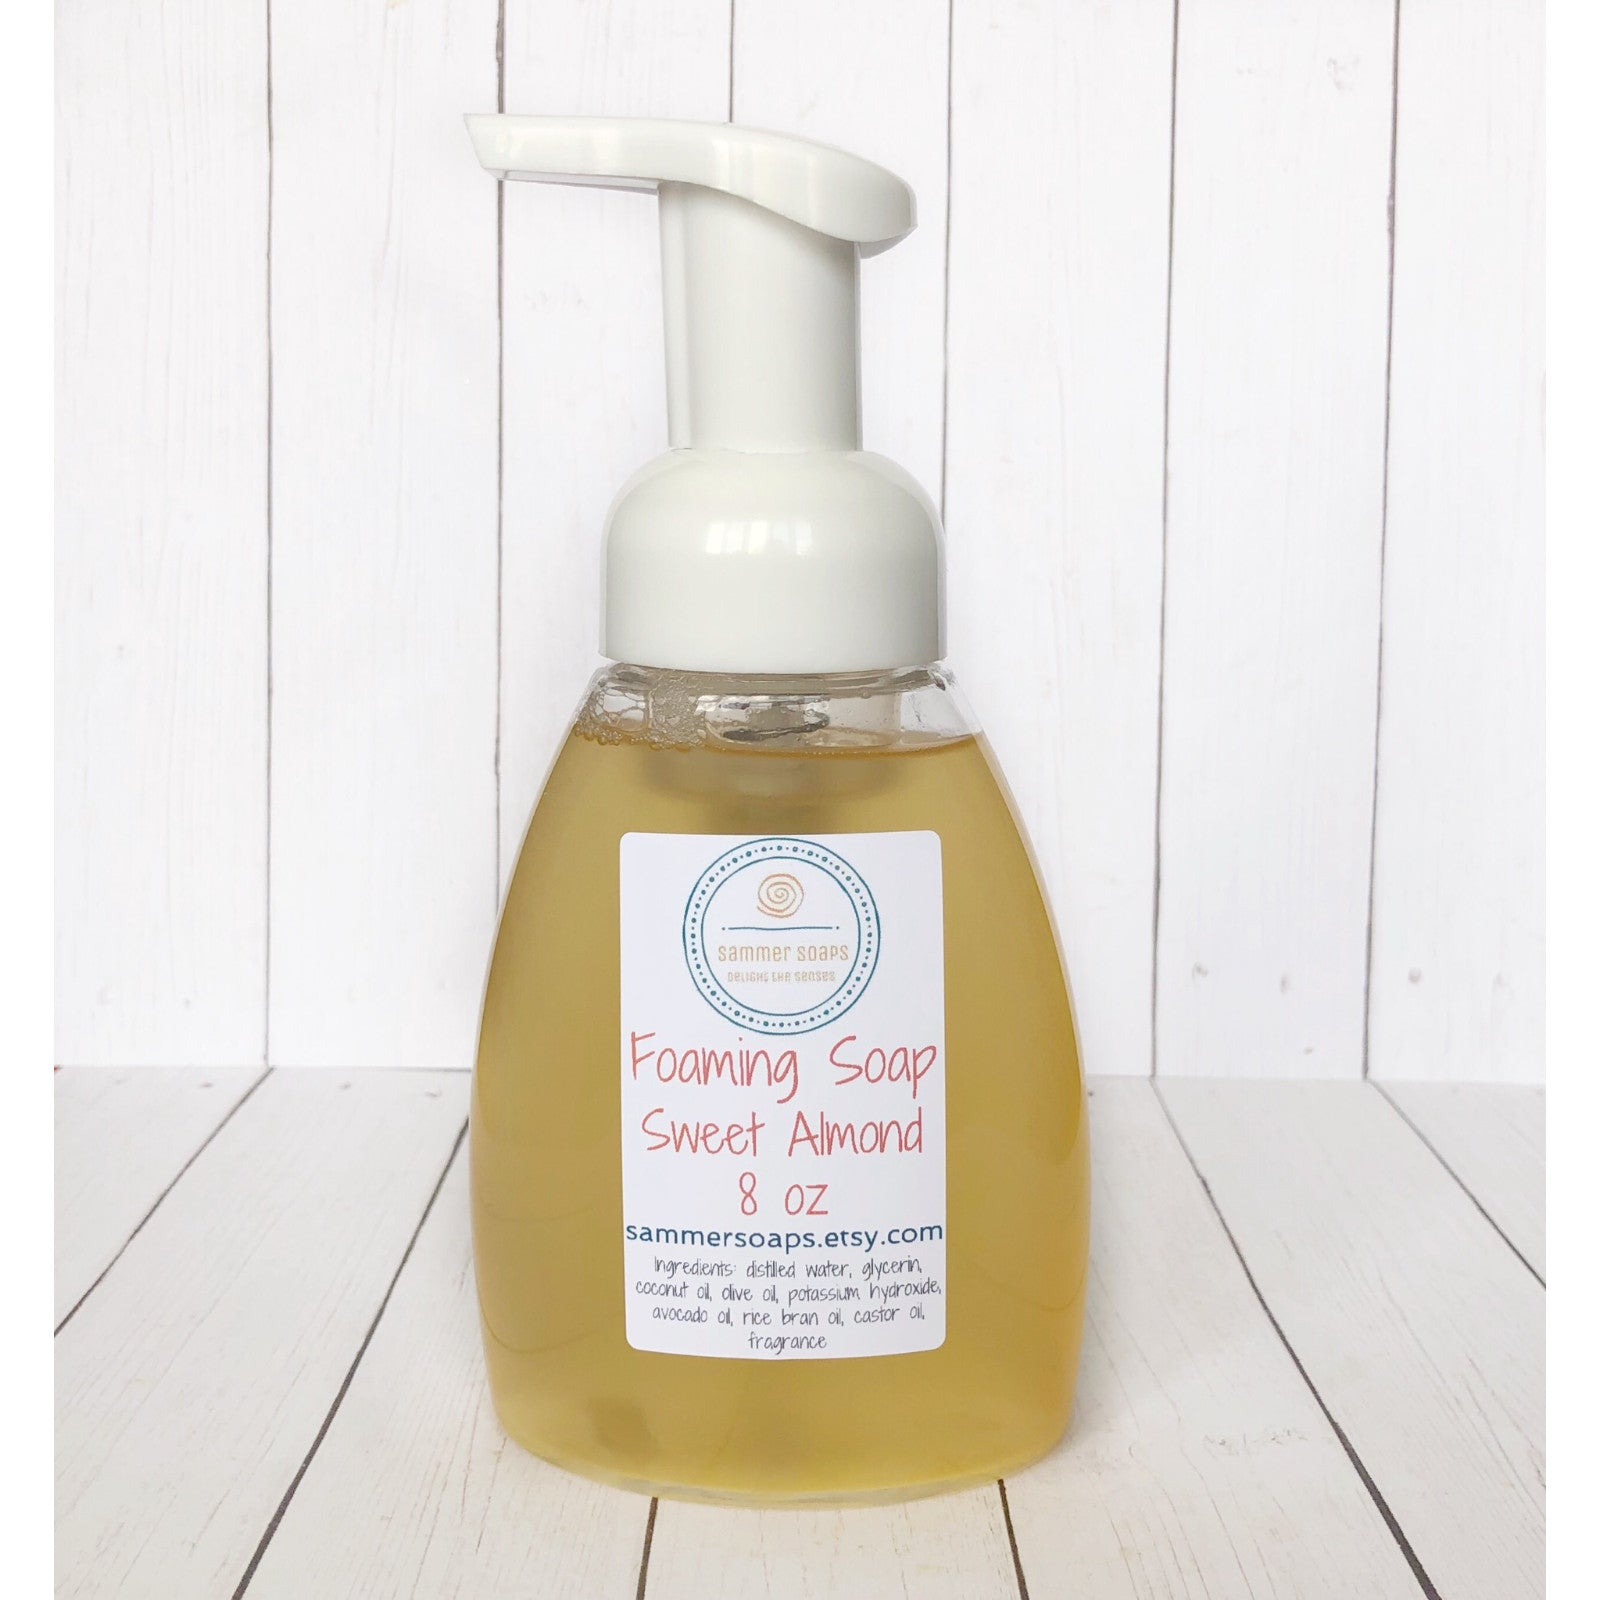 Foaming Hand Soap - All Natural Foaming Hand Soap - Citrus Grove, Honey Almond, Lemon Drop, Vanilla Butter Foaming Hand Soap - Foaming Hand Soap for Bathroom or Kitchen Sink - Nohprec Experience